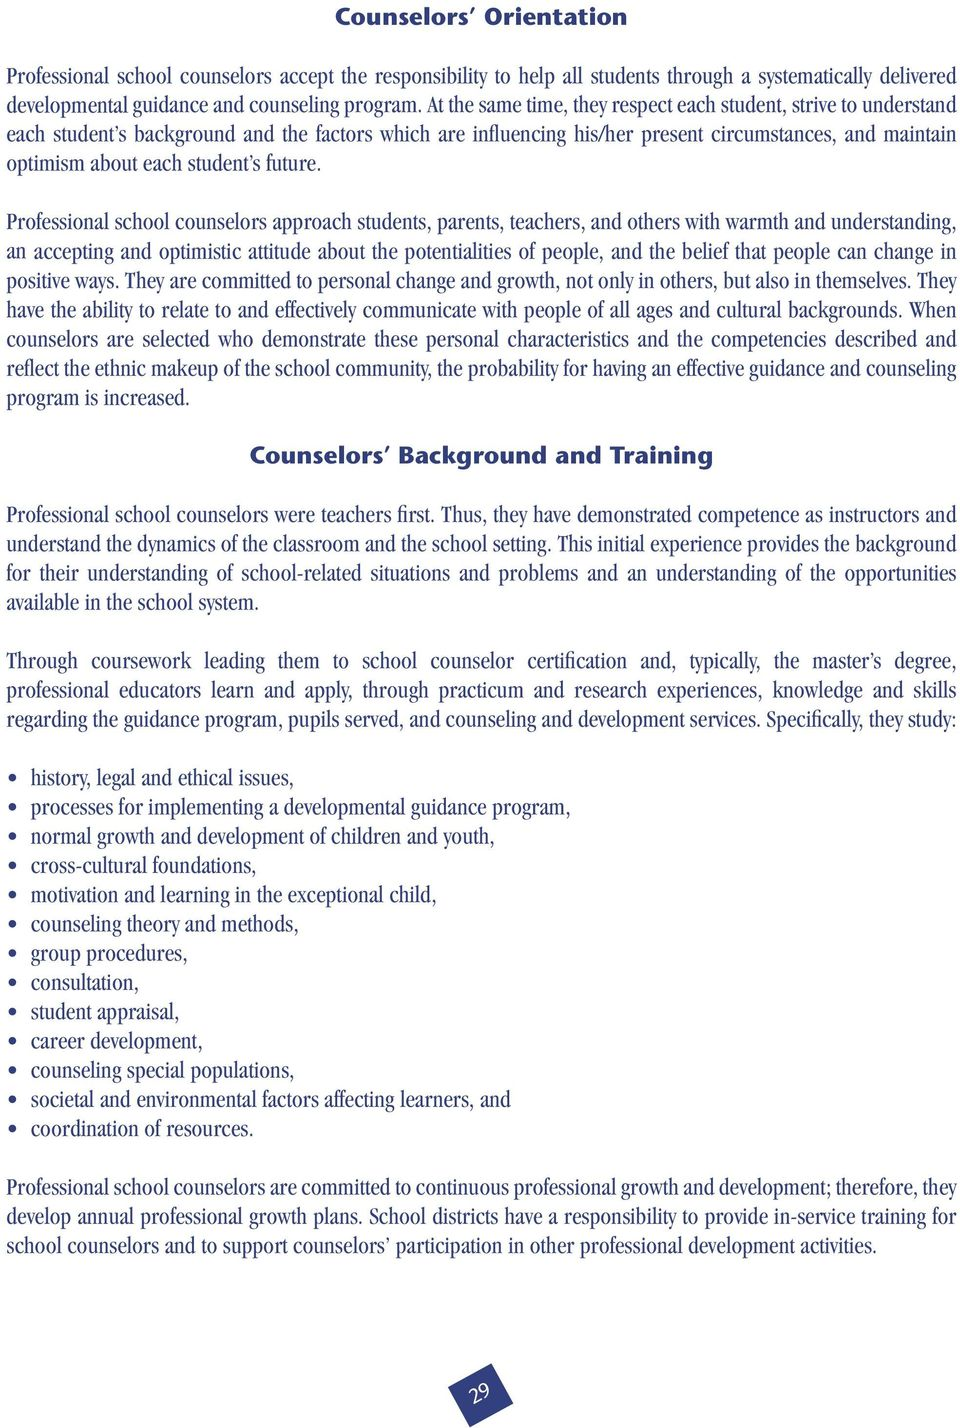 Section Iii The Responsibilities Of School Counselors And Other